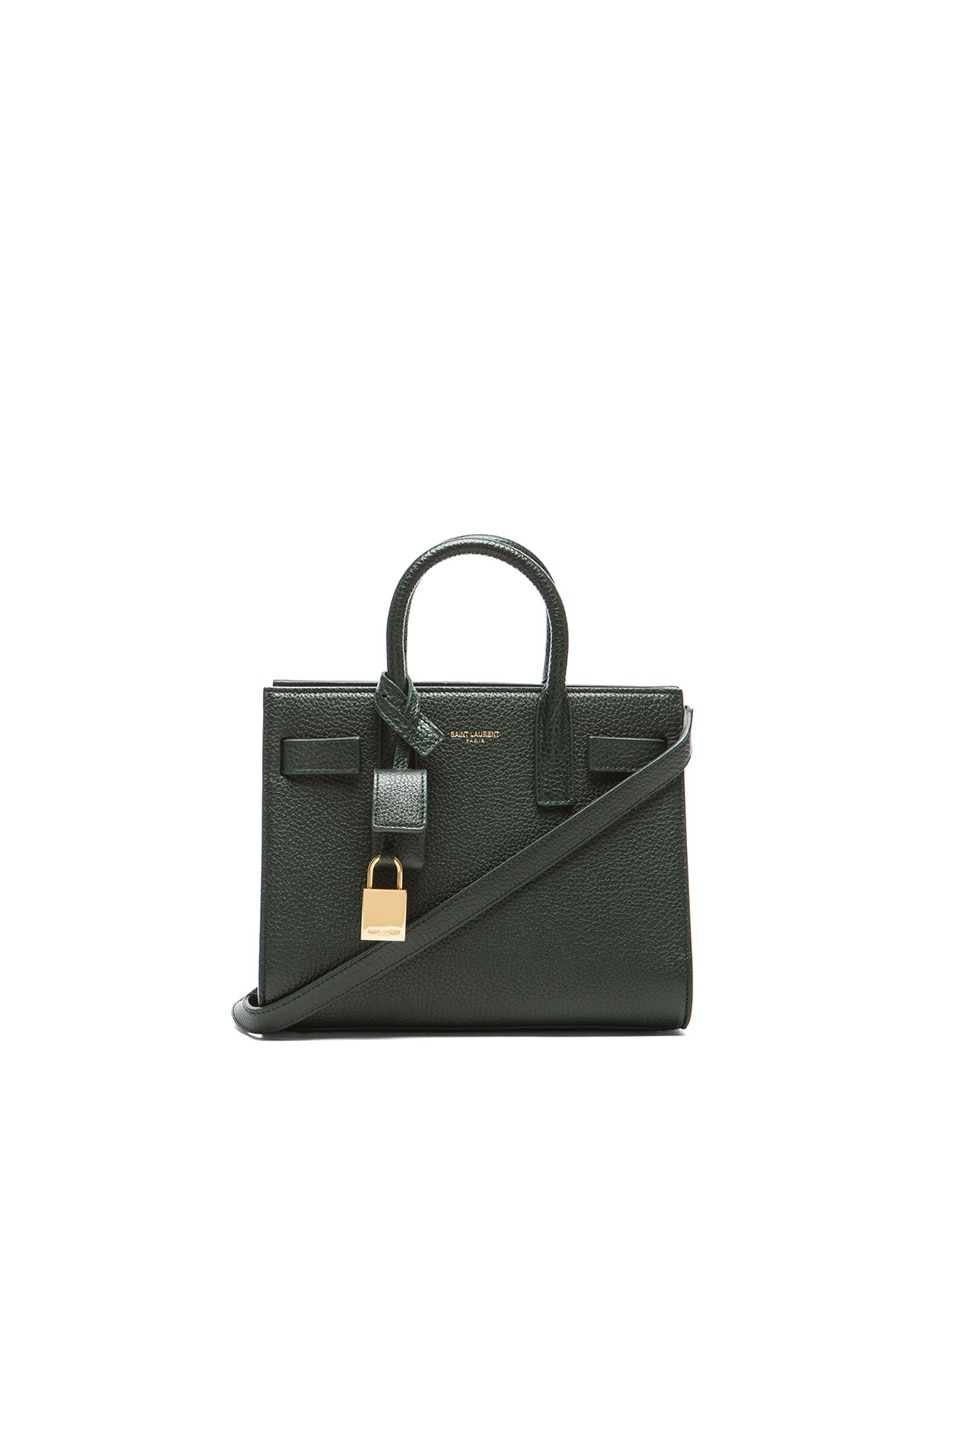 Image 1 of Saint Laurent Nano Sac De Jour Carryall Bag in Green